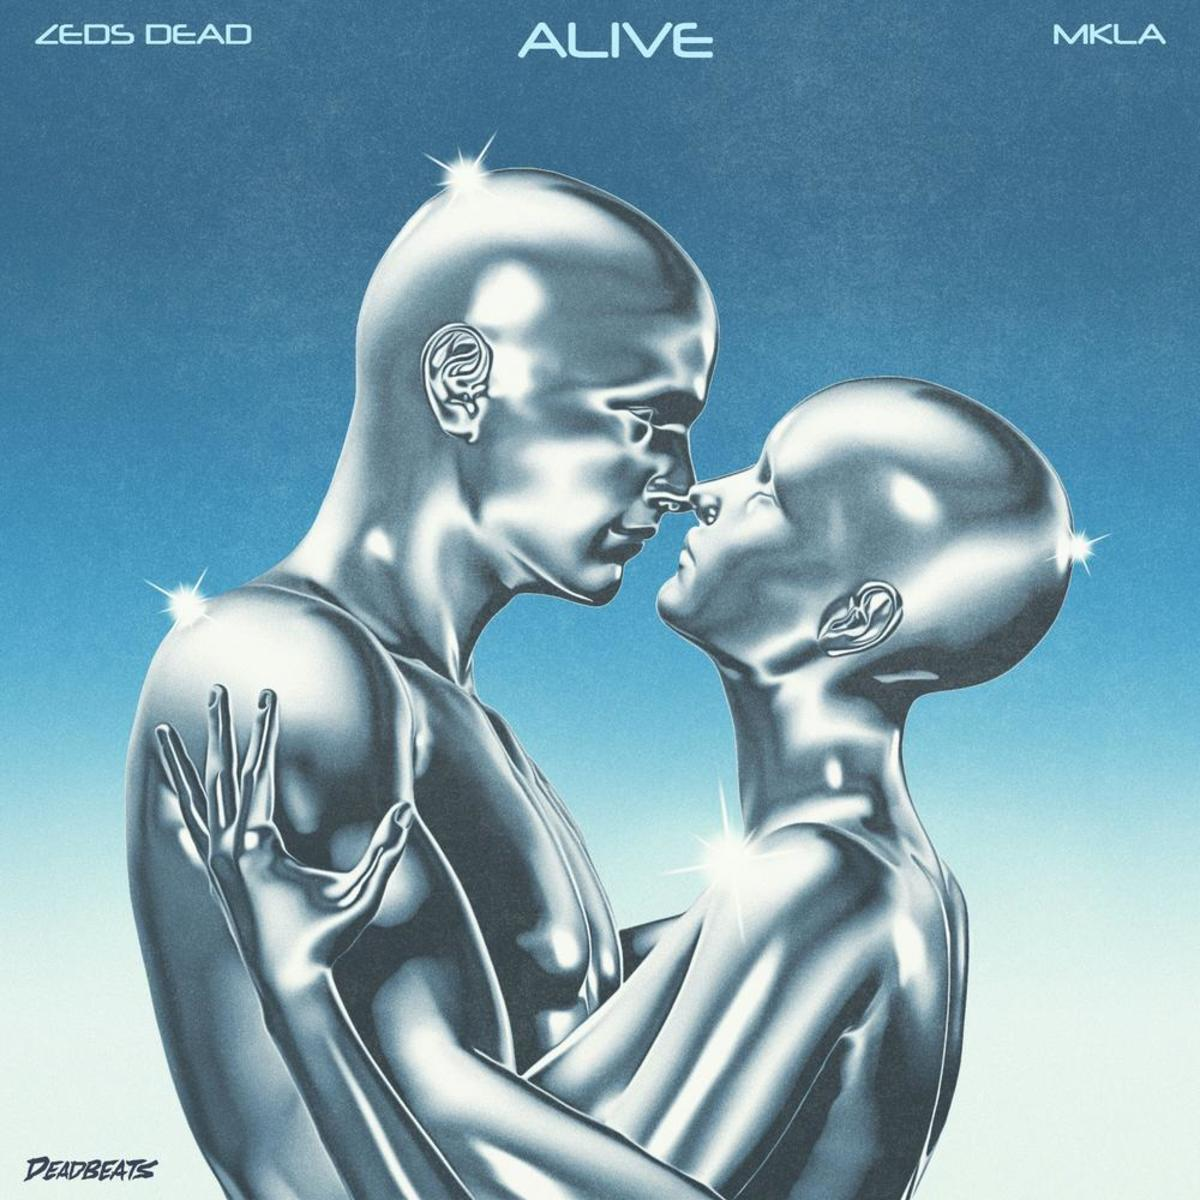 """Artwork for Zeds Dead and MKLA's """"Alive,"""" out now on Deadbeats."""